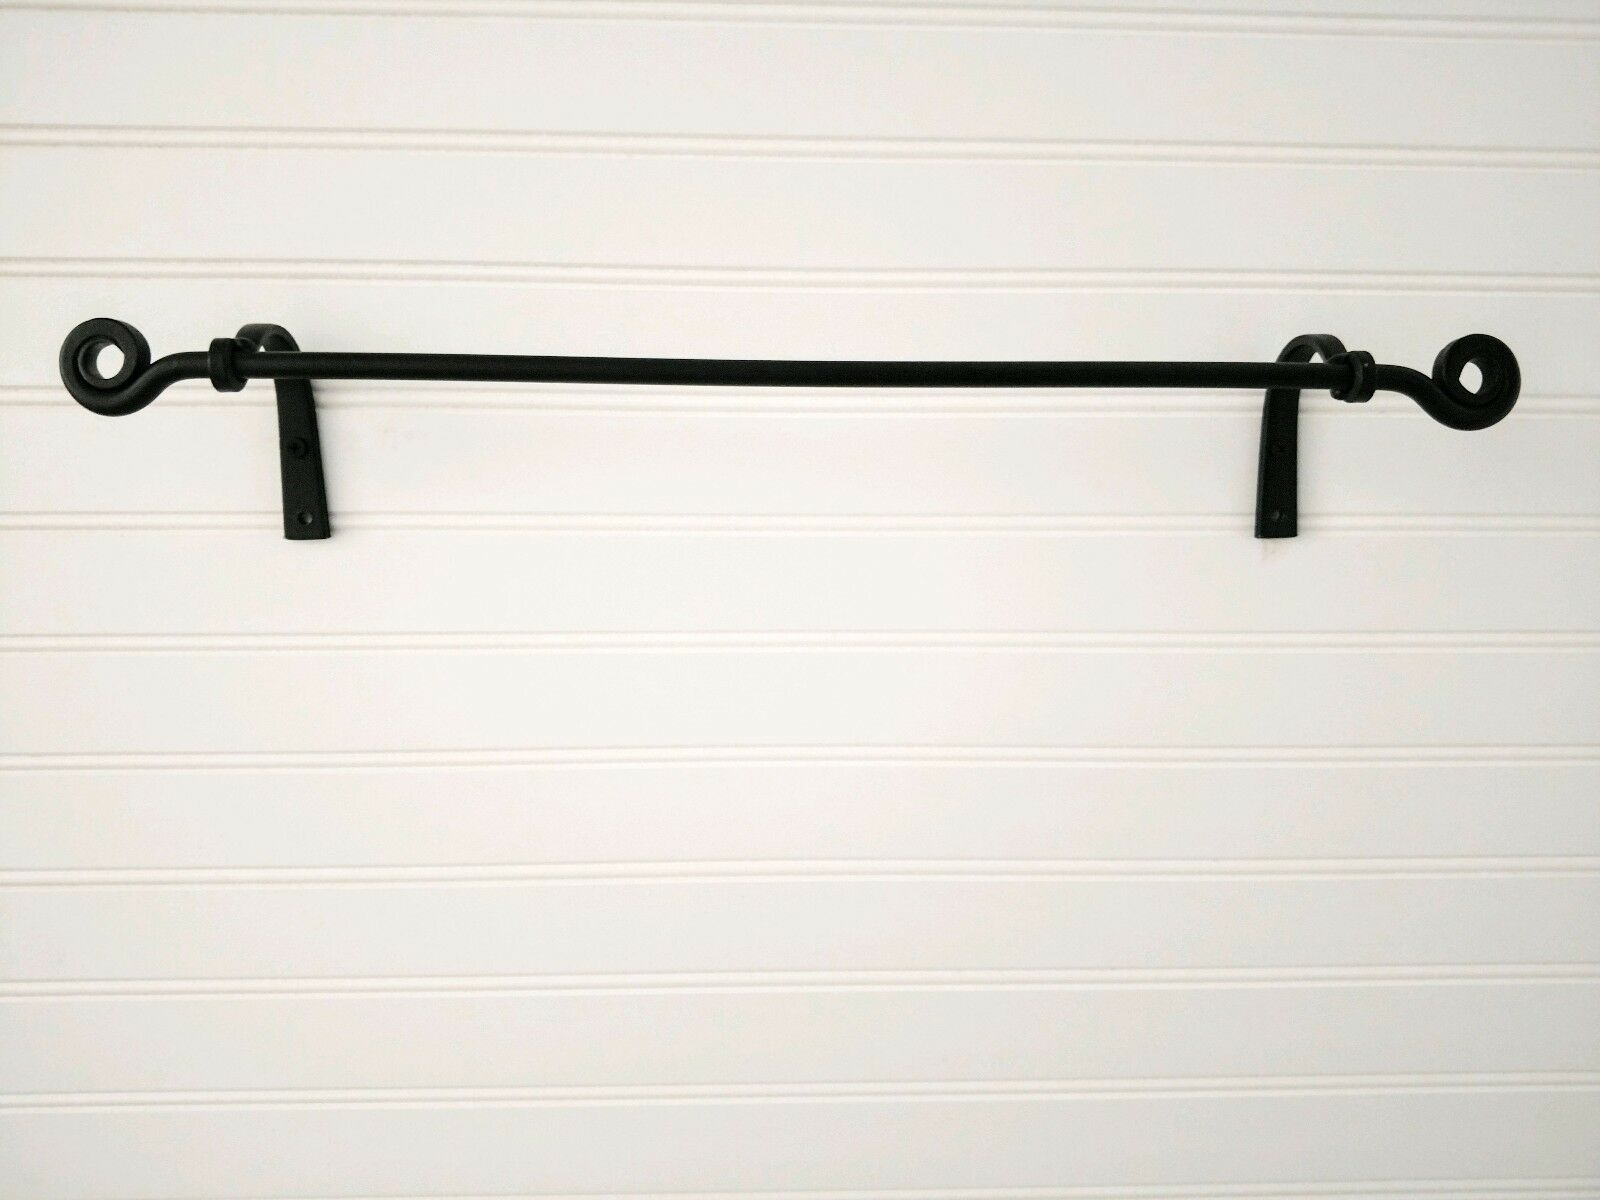 Amish Forged Wrought Iron Small Towel Bar Strong Sy Hand Crafted Metal 1 Of 12only 4 Available